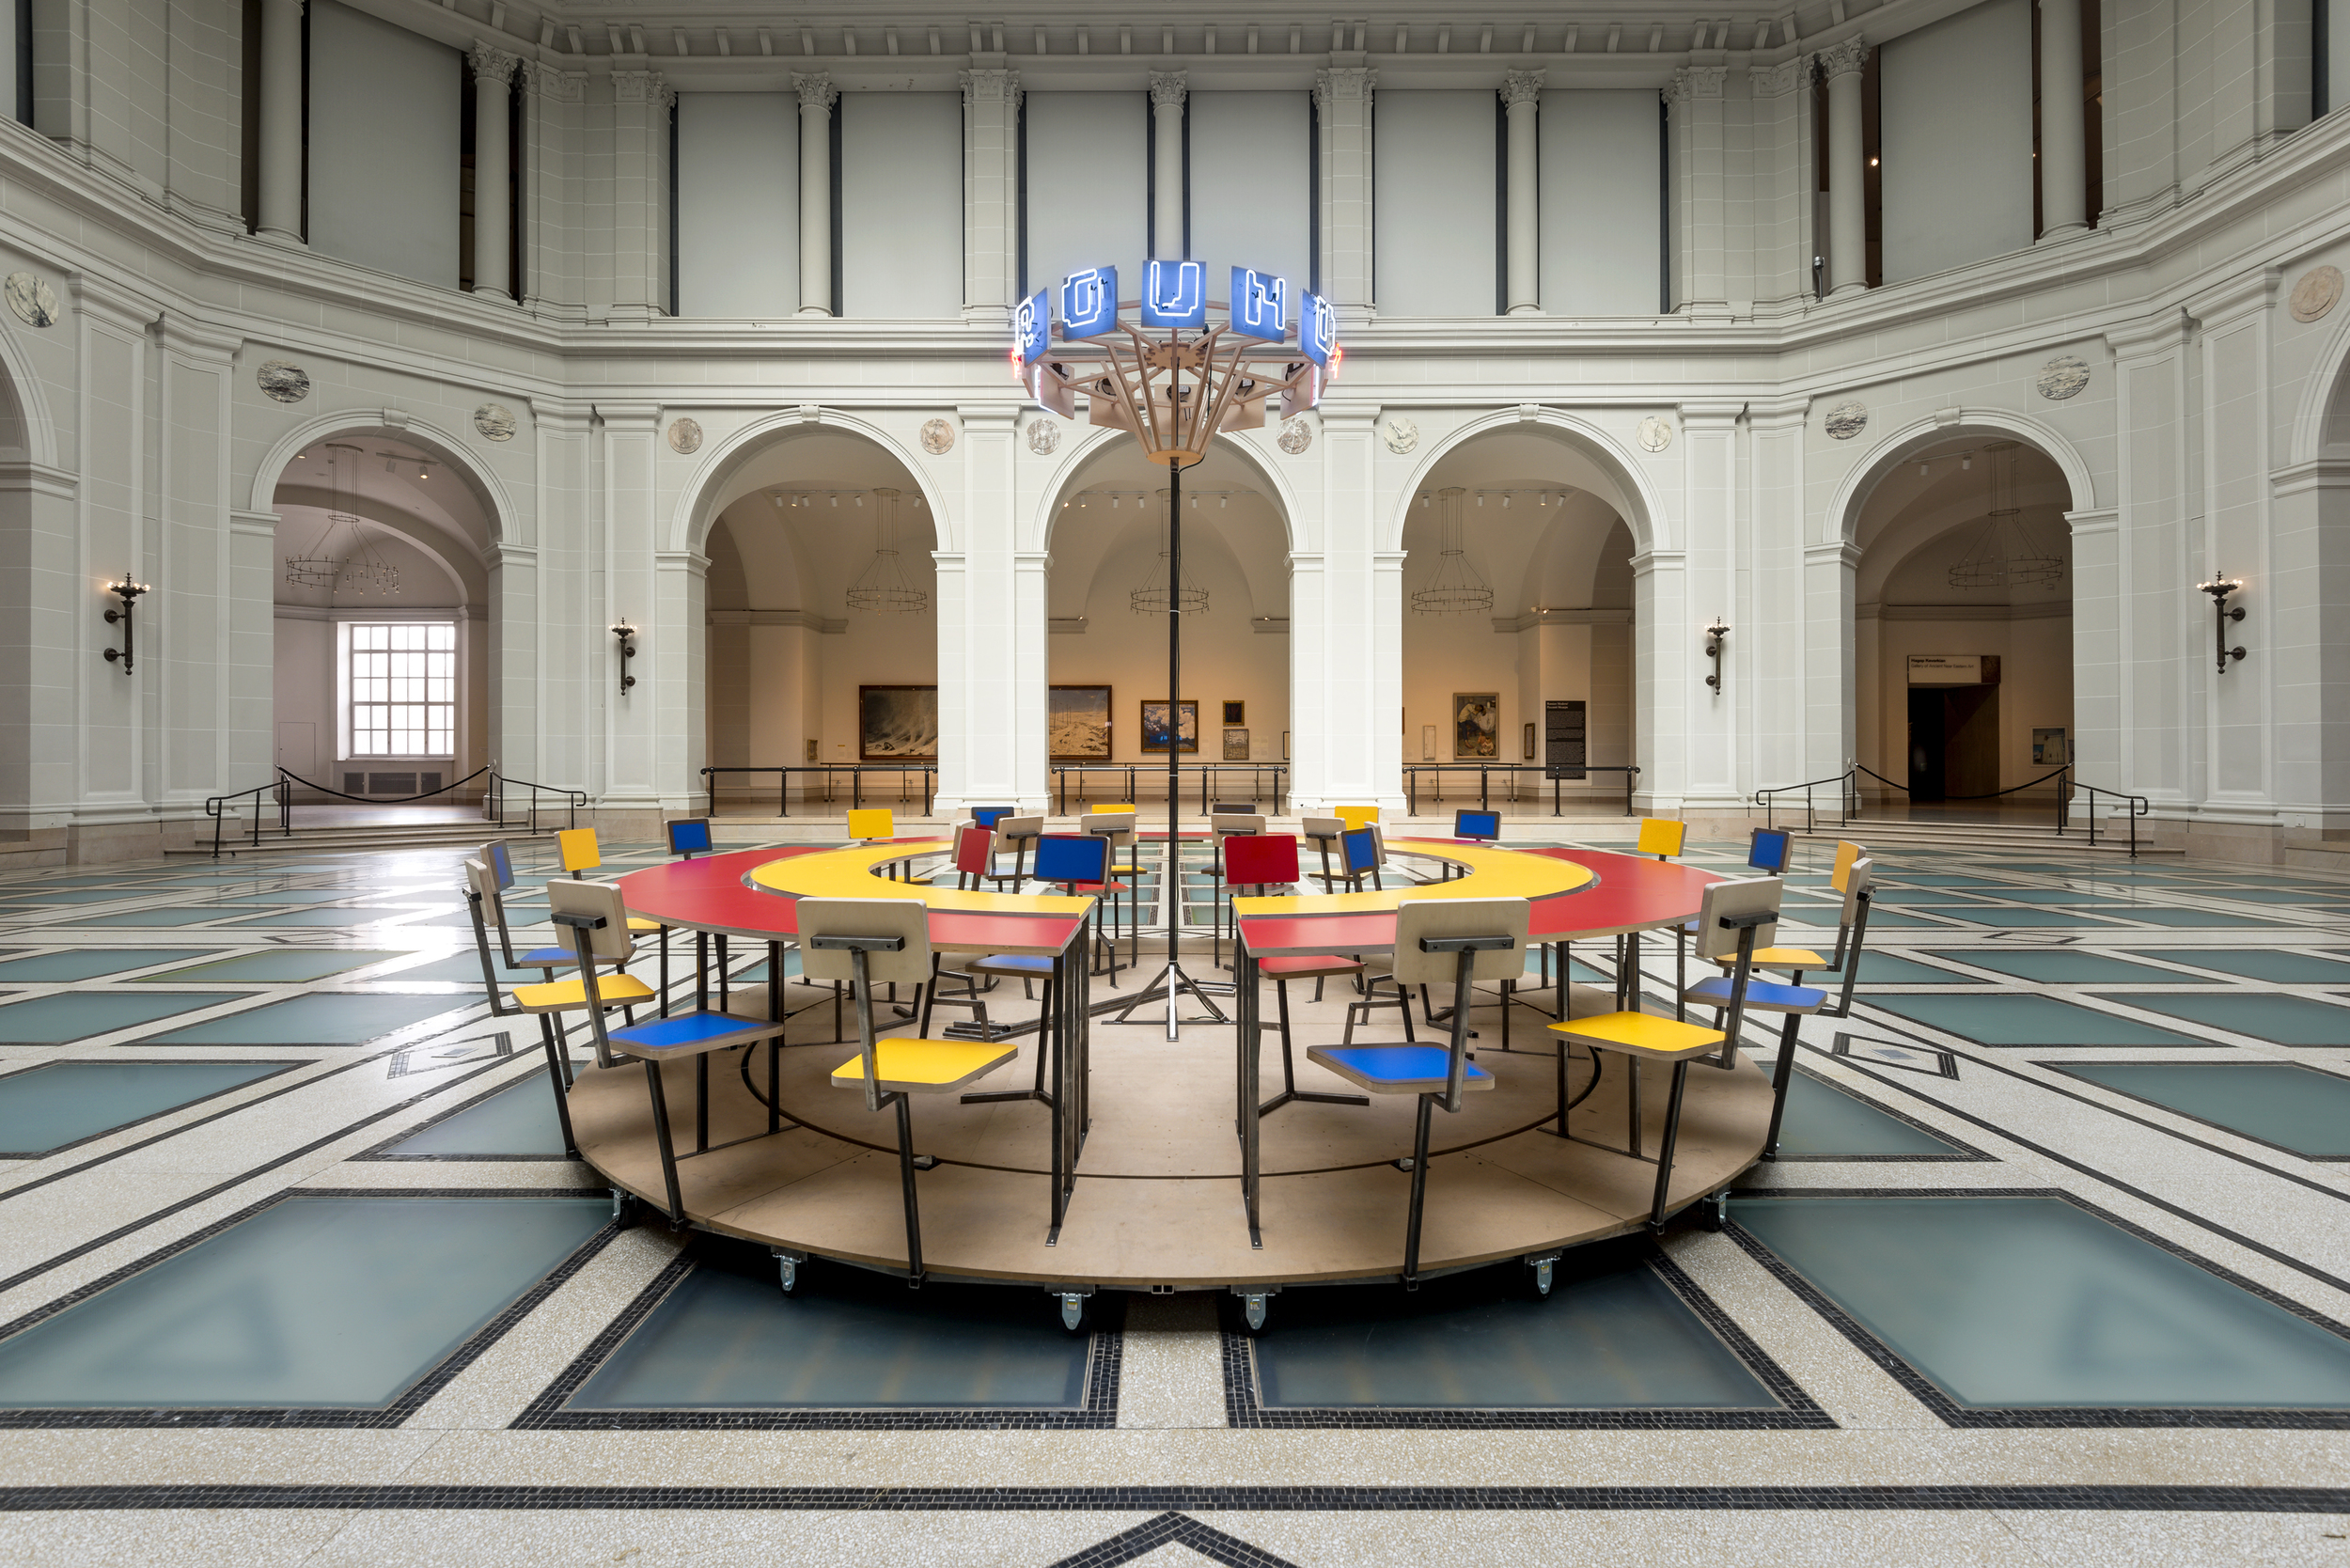 Until the Cows Come Home  (2014), as installed at the Brooklyn Museum in 2014. Steel, neon, laminated mdf, pine; 60 x 168 in. (table), 24 x 60 in. (neon centerpiece). ( photo : Giles Ashford)